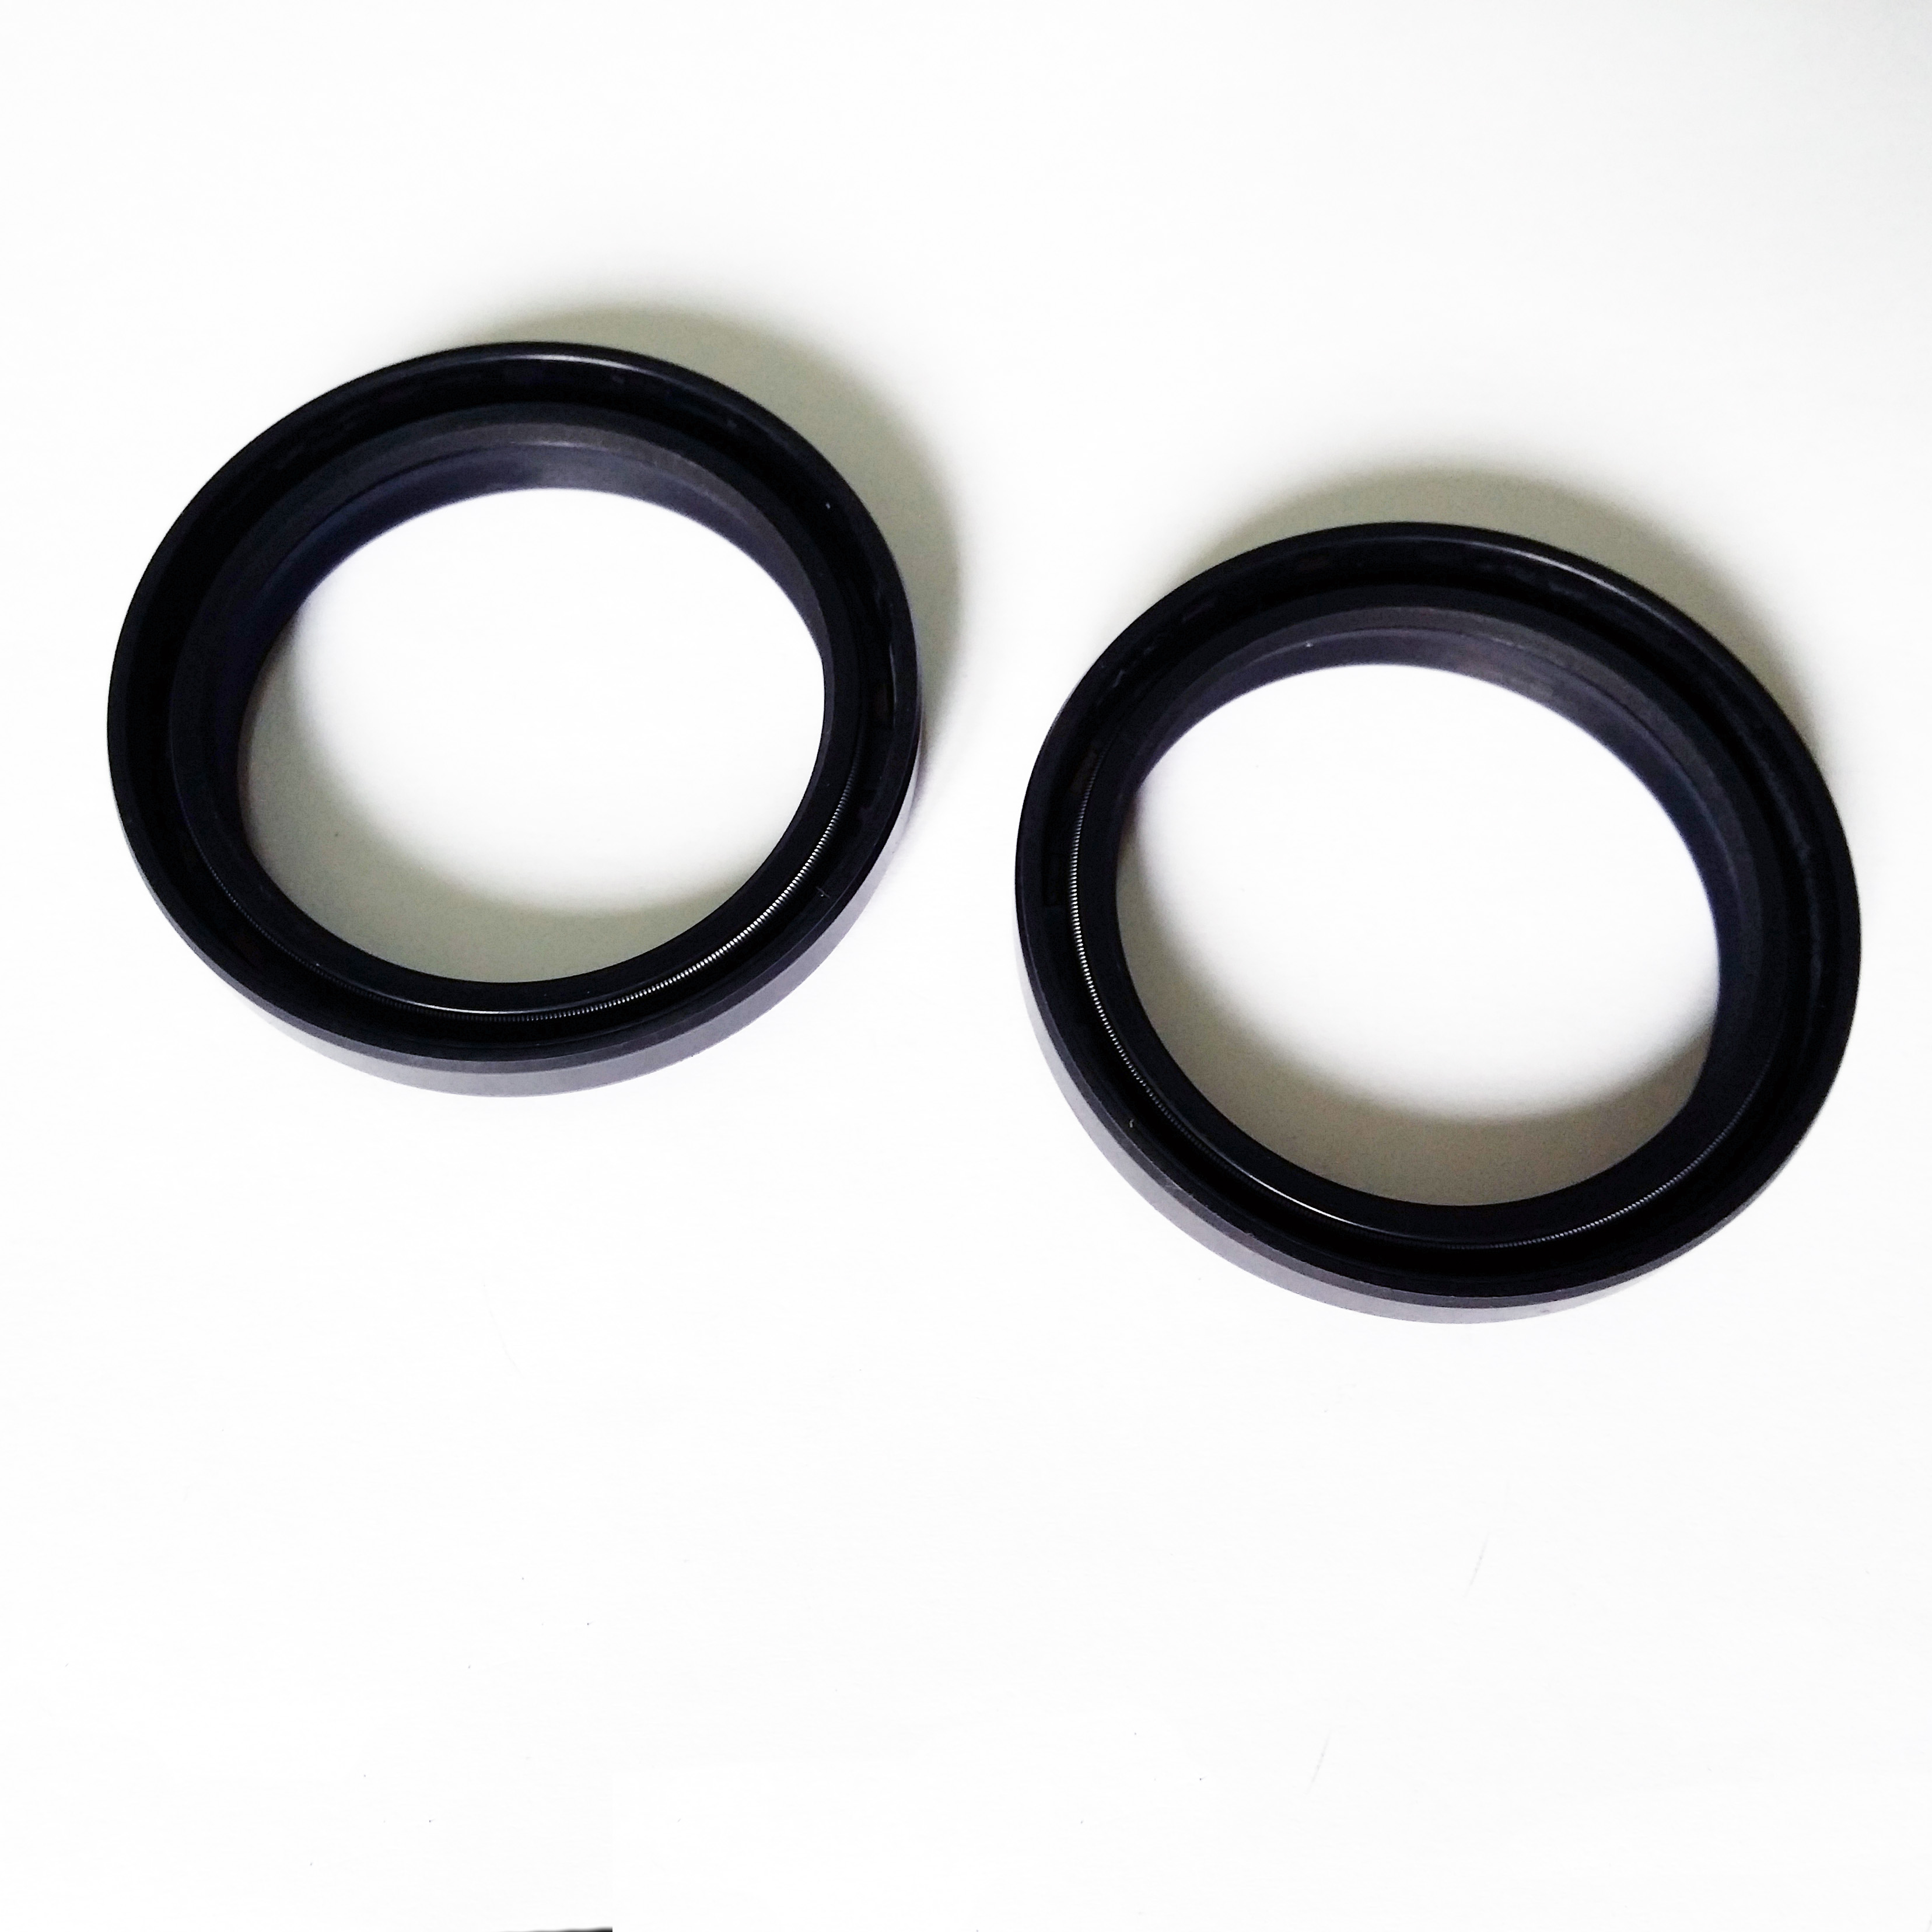 K-Tech Suzuki GSXR750 2006-2016 NOK Front Fork Oil Seals 41x54x11mm